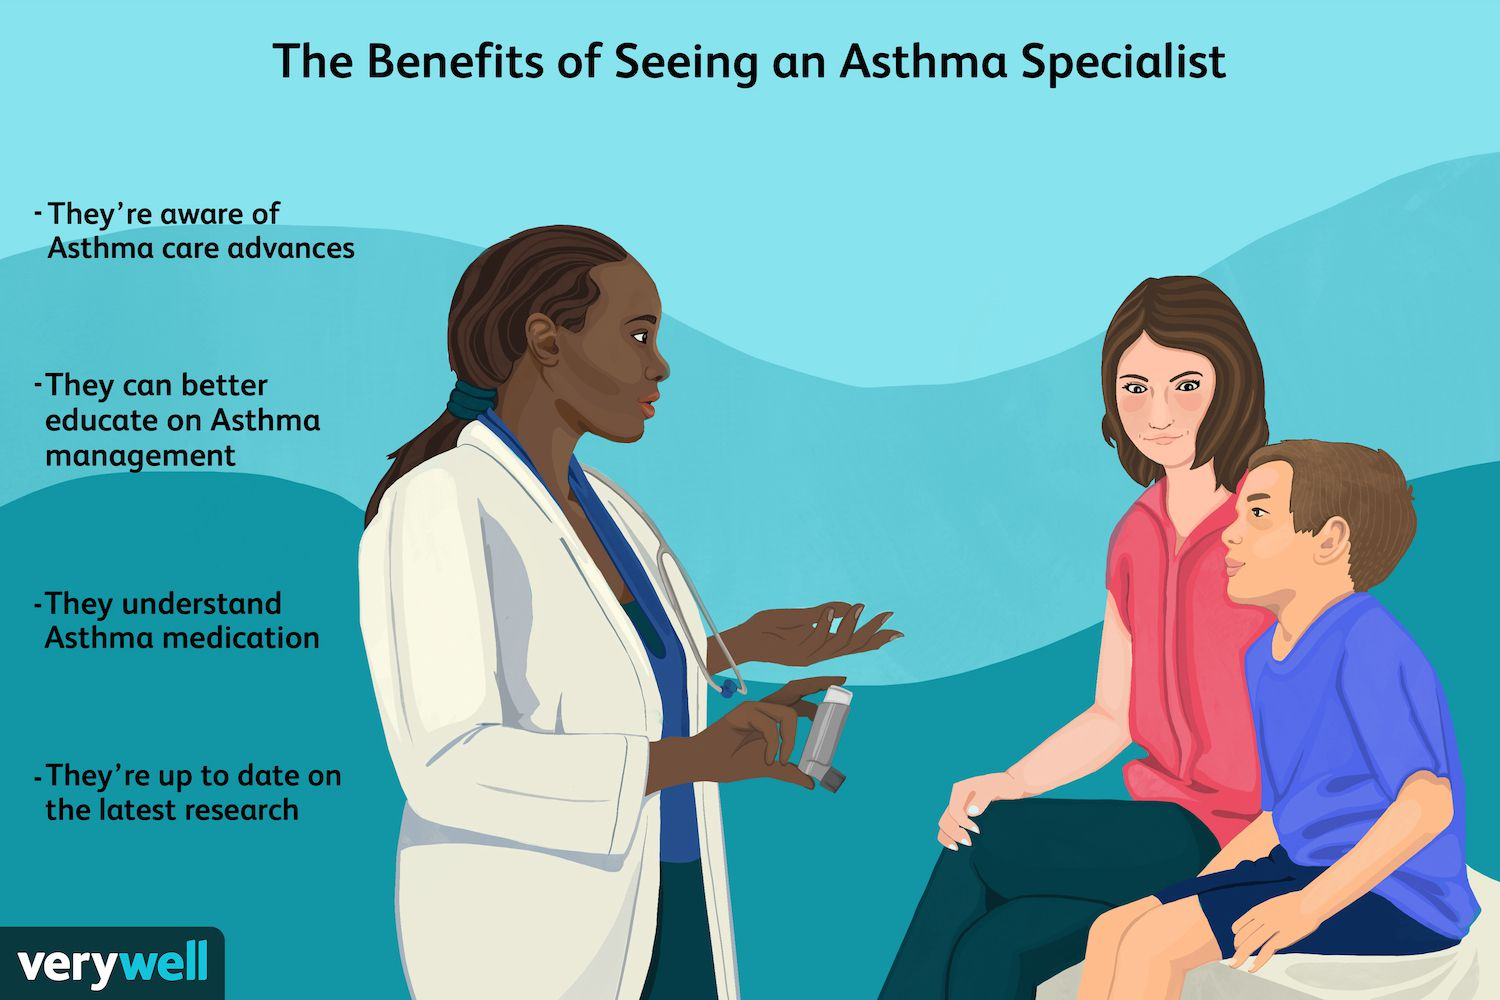 The Benefits of Seeing an Asthma Specialist